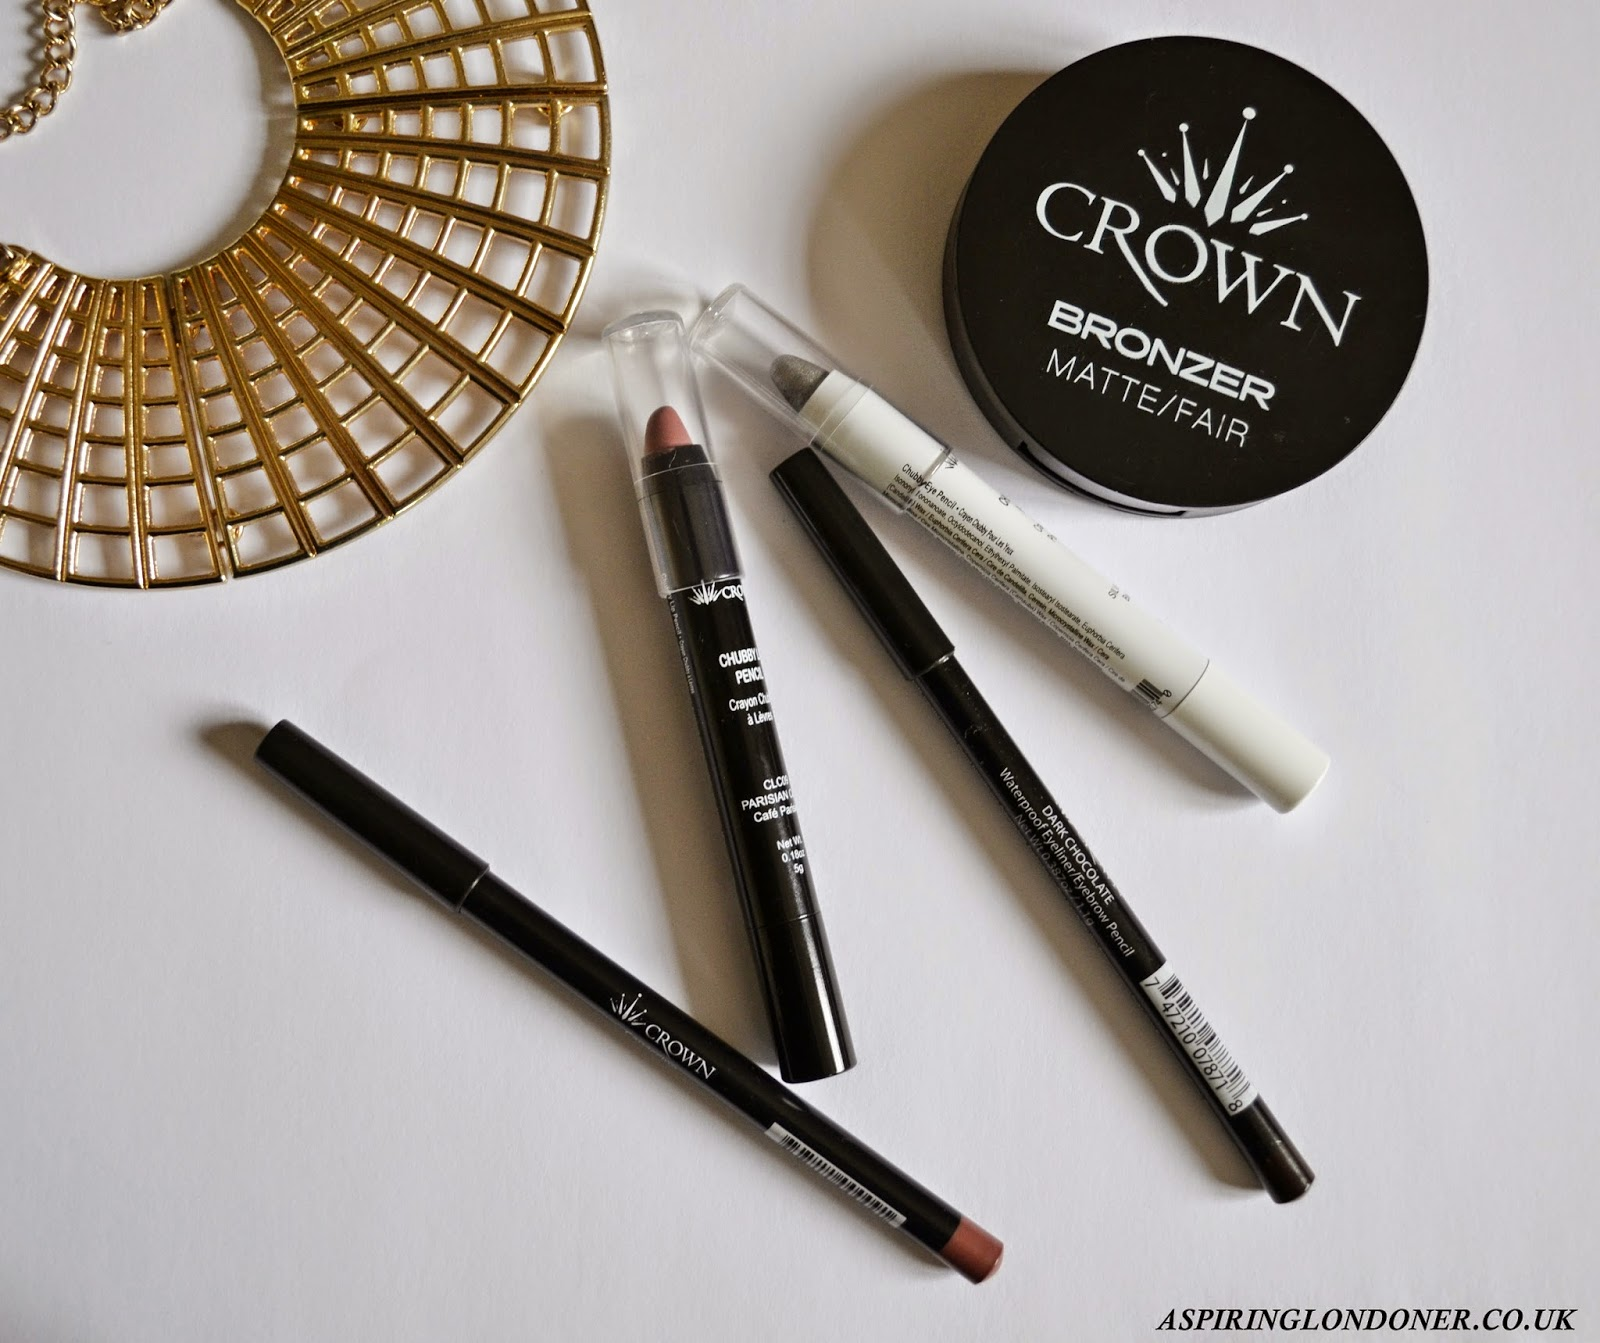 Crown Brush Makeup ft Bronzer, Chubby Lip Pencil, Eyeliner Eyebrow Pencil - Aspiring Londoner